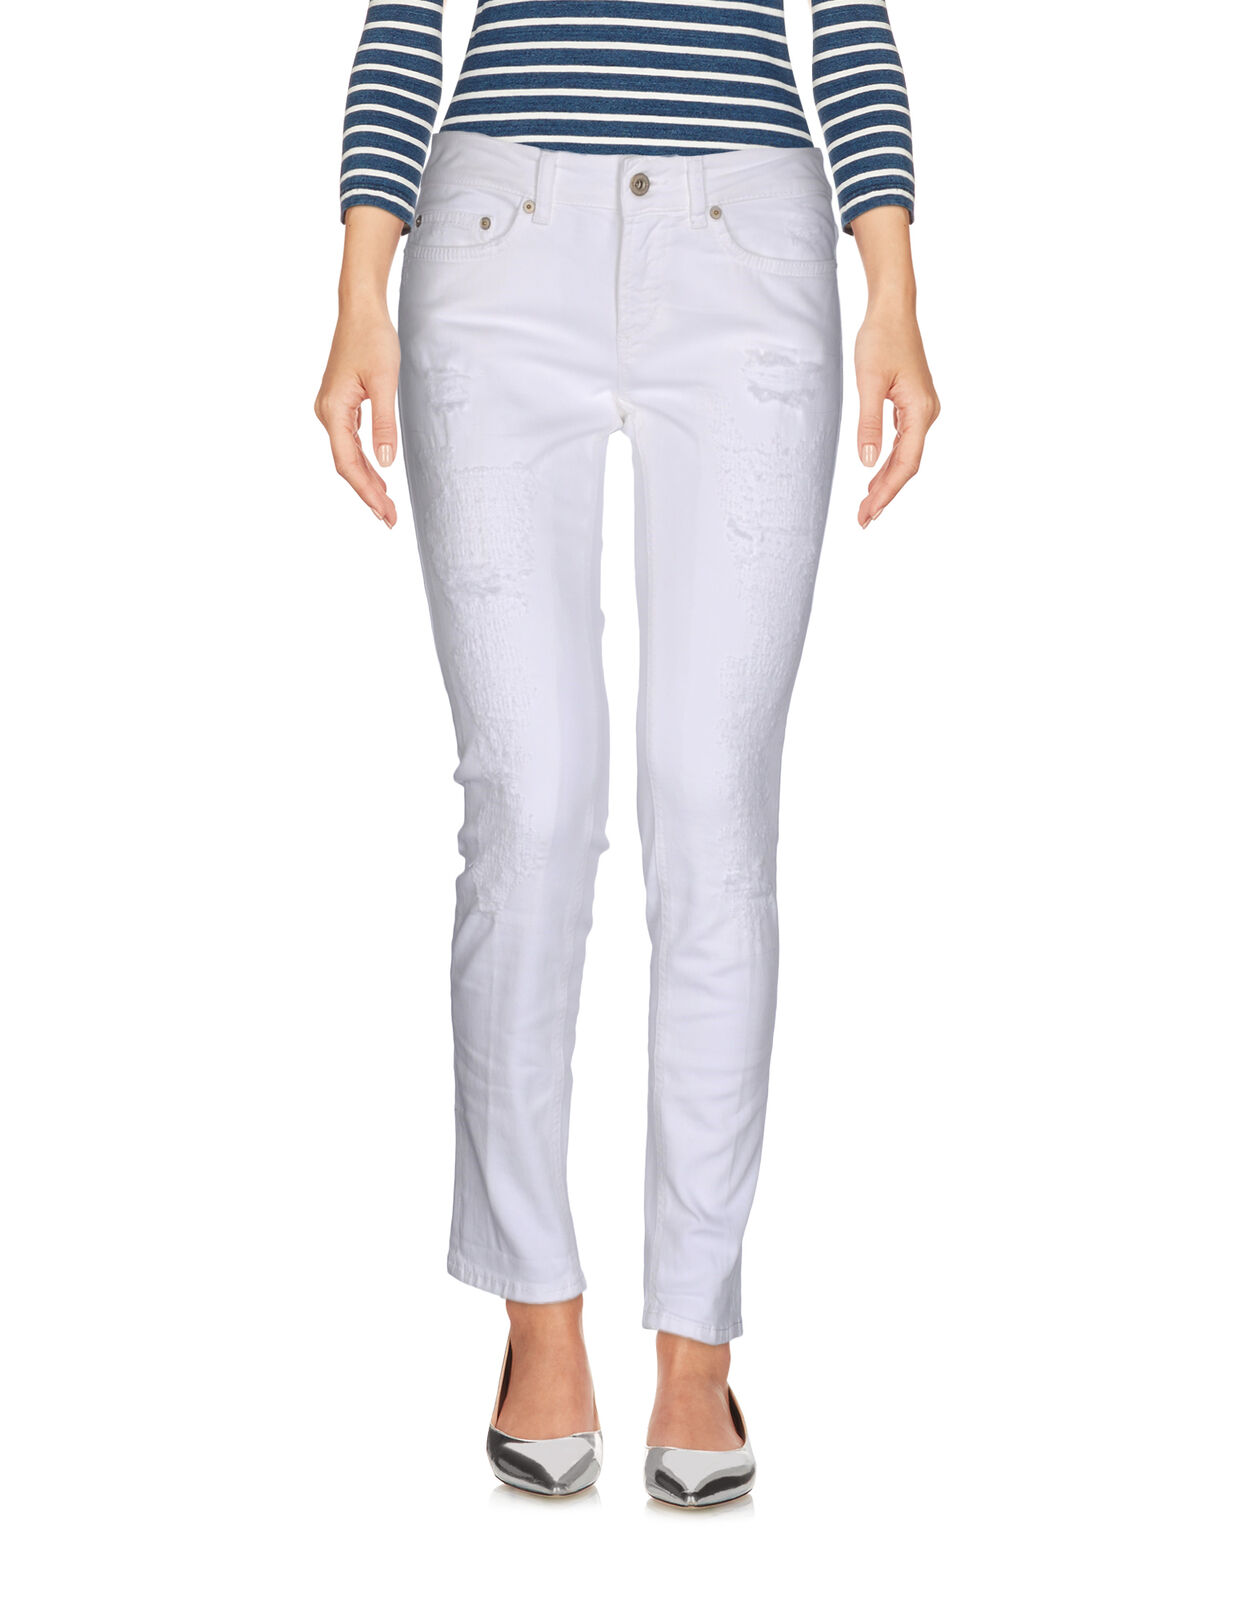 Dondup Womens Denim Slim Fit Trousers Jeans White 25(XS)